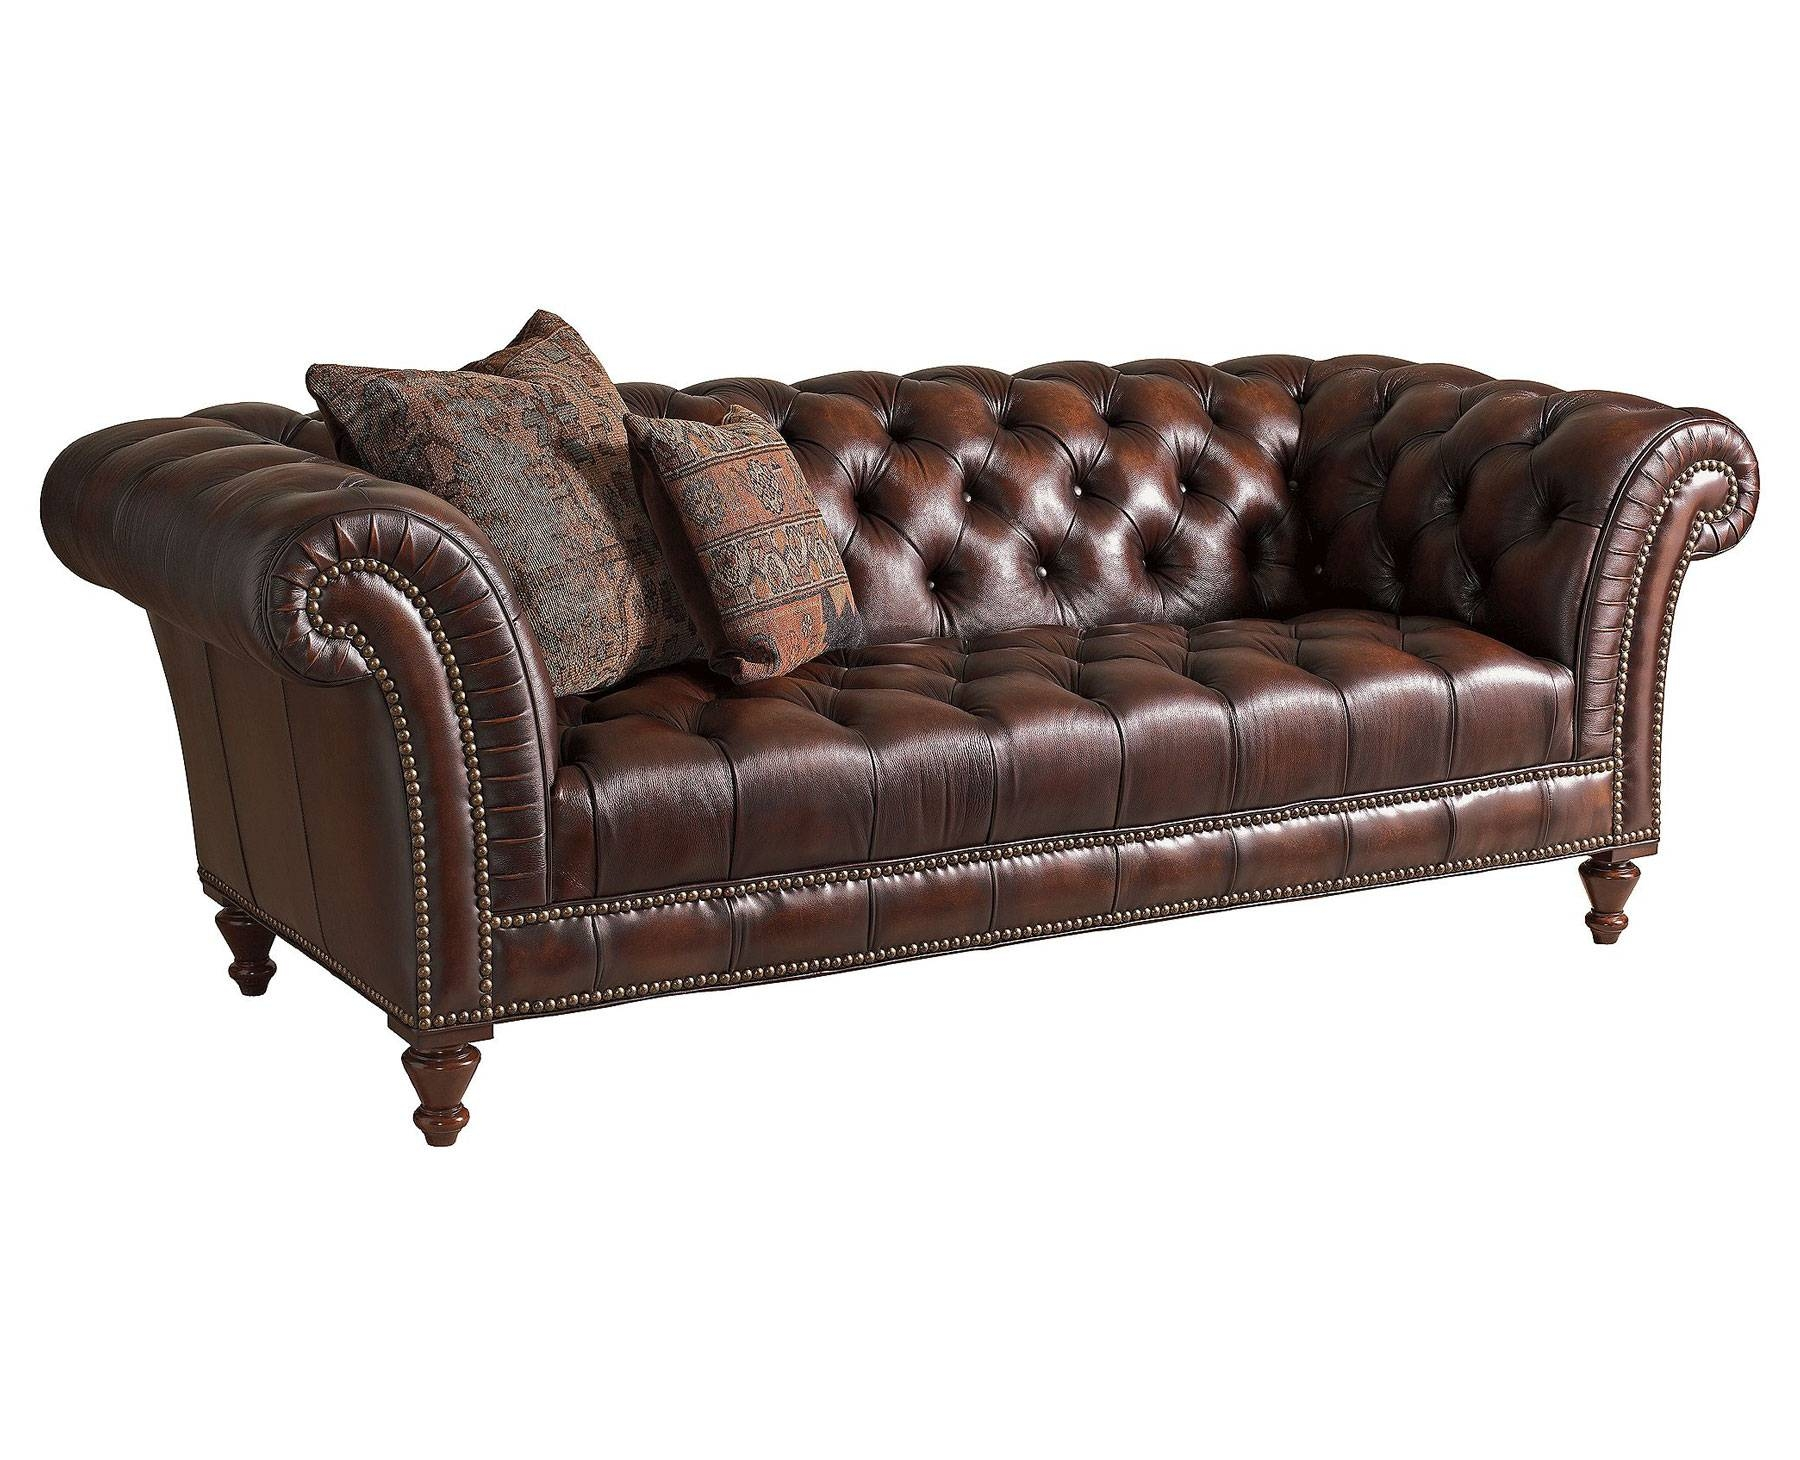 Living Room : Living Room Furniture Leather Furniture Companies with regard to Victorian Leather Sofas (Image 14 of 30)